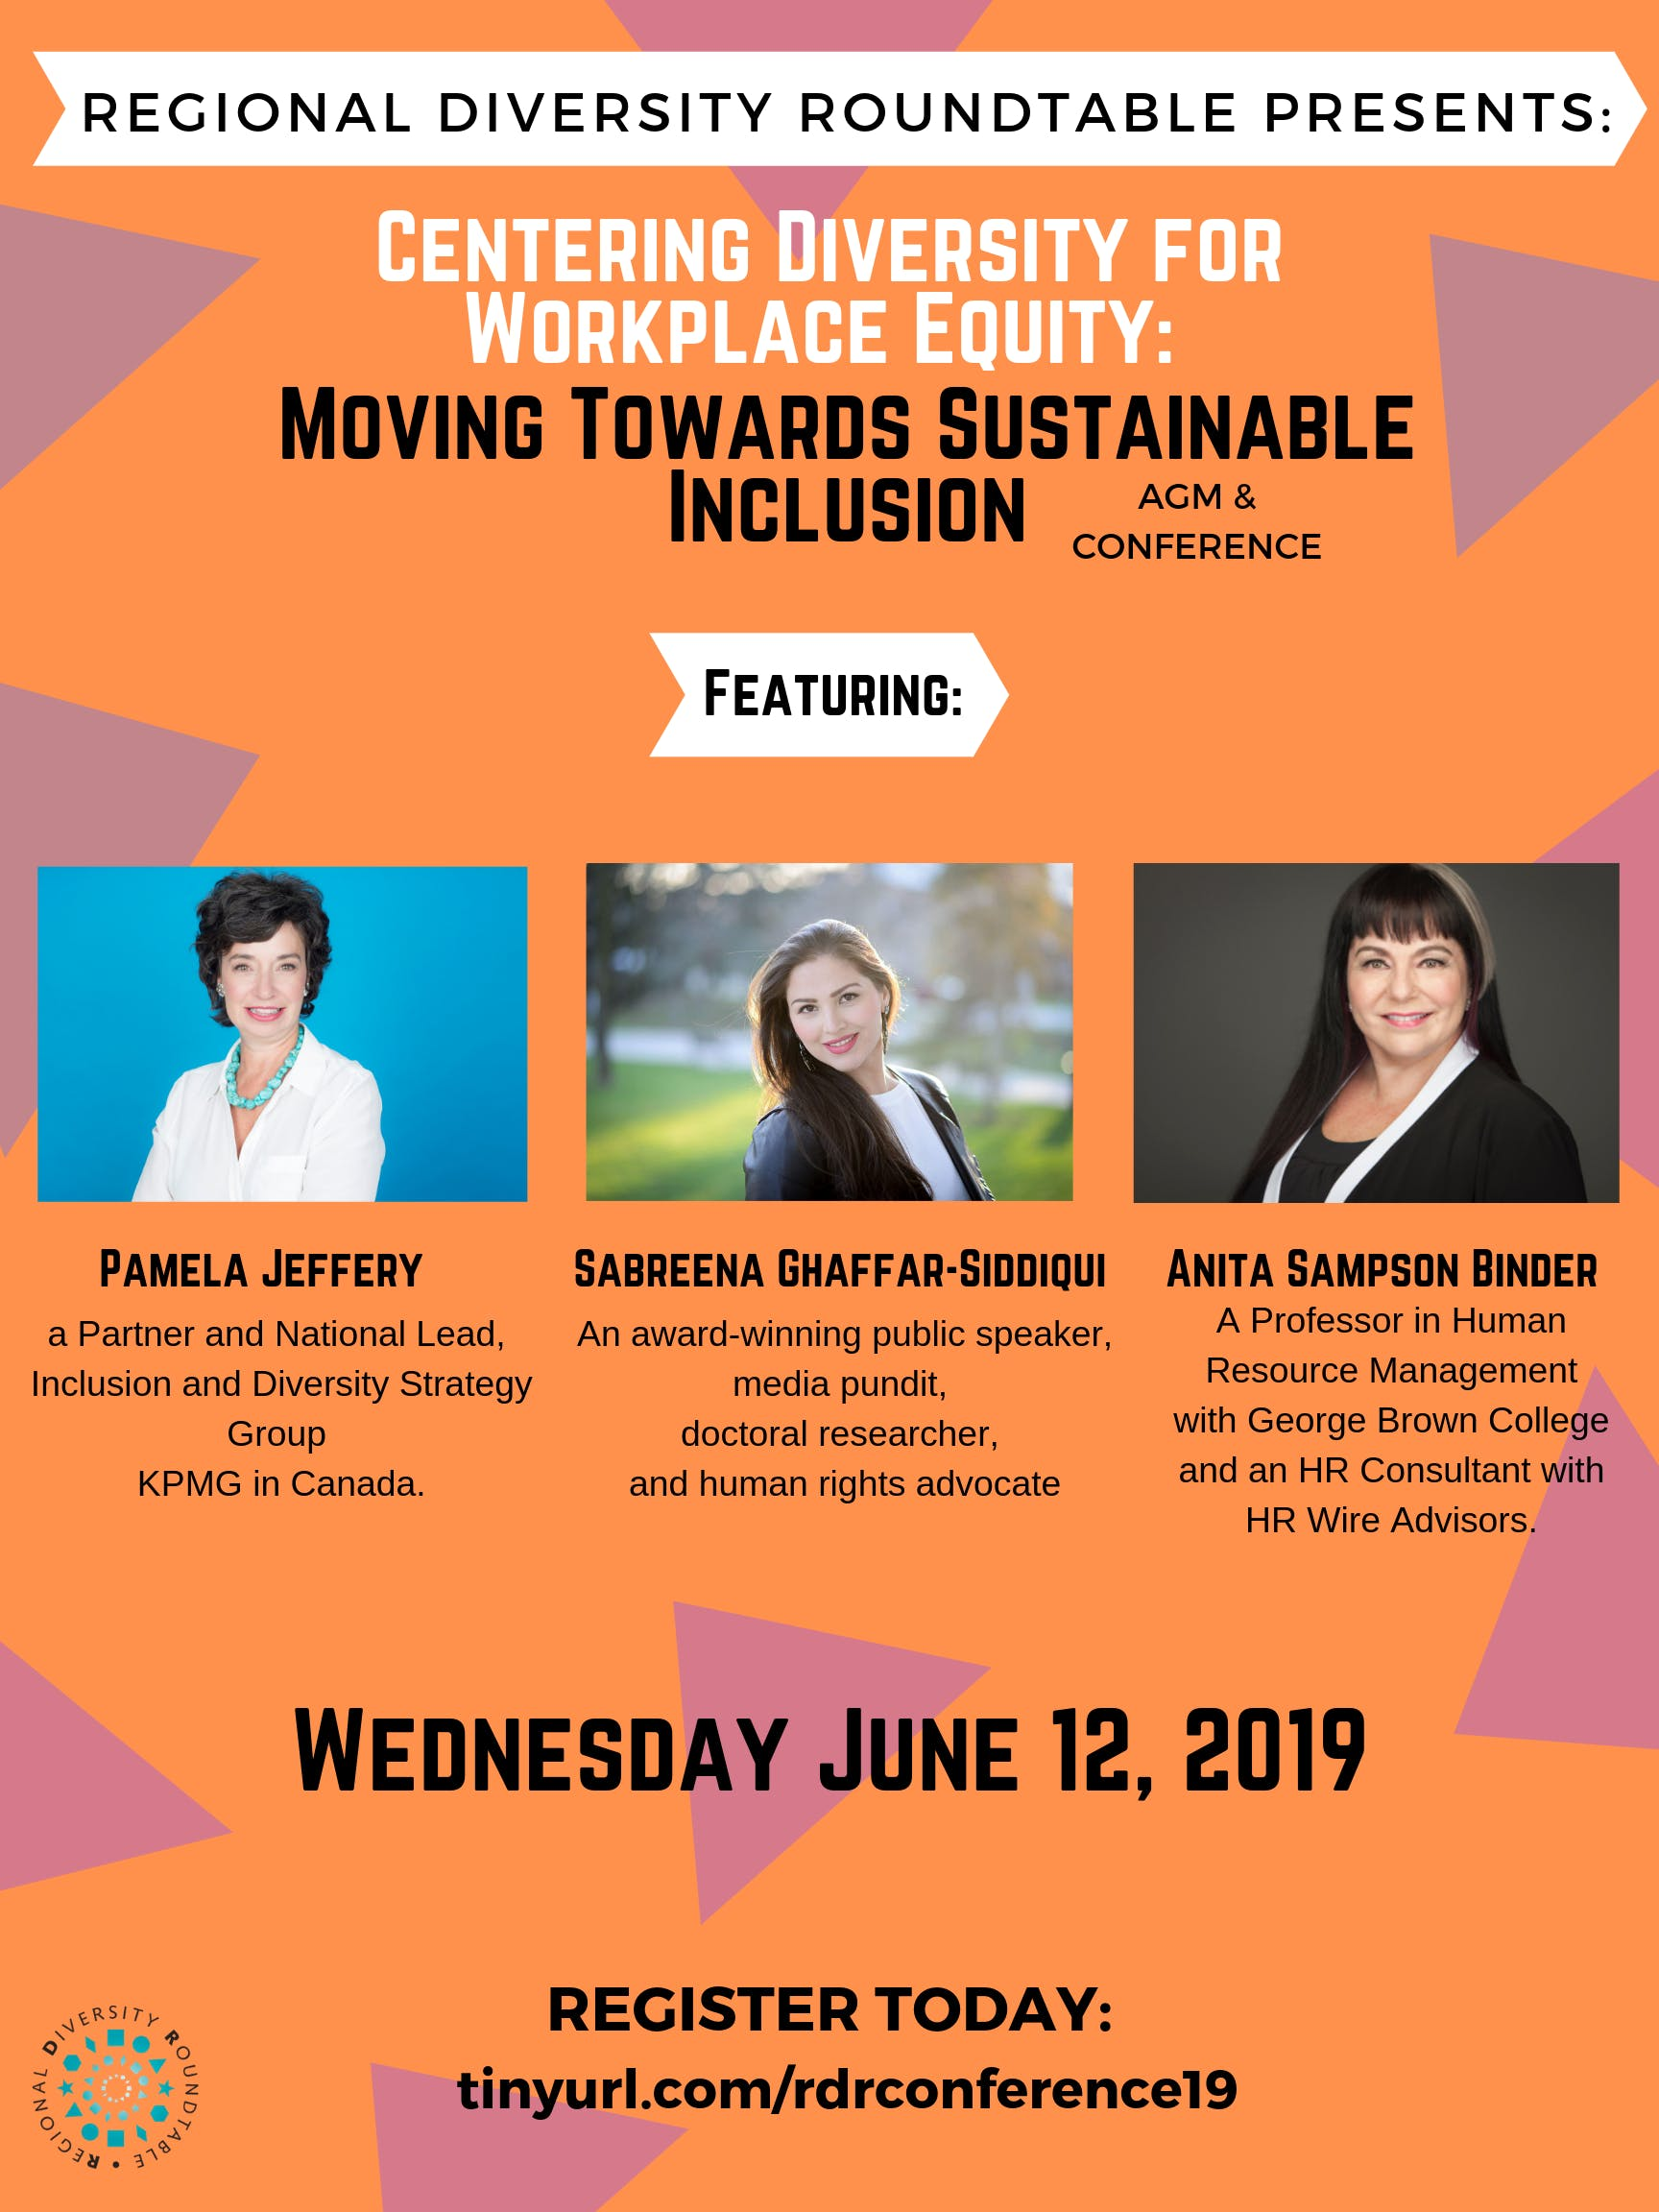 RDR Conference 2019: Centering Diversity for Workplace Equity